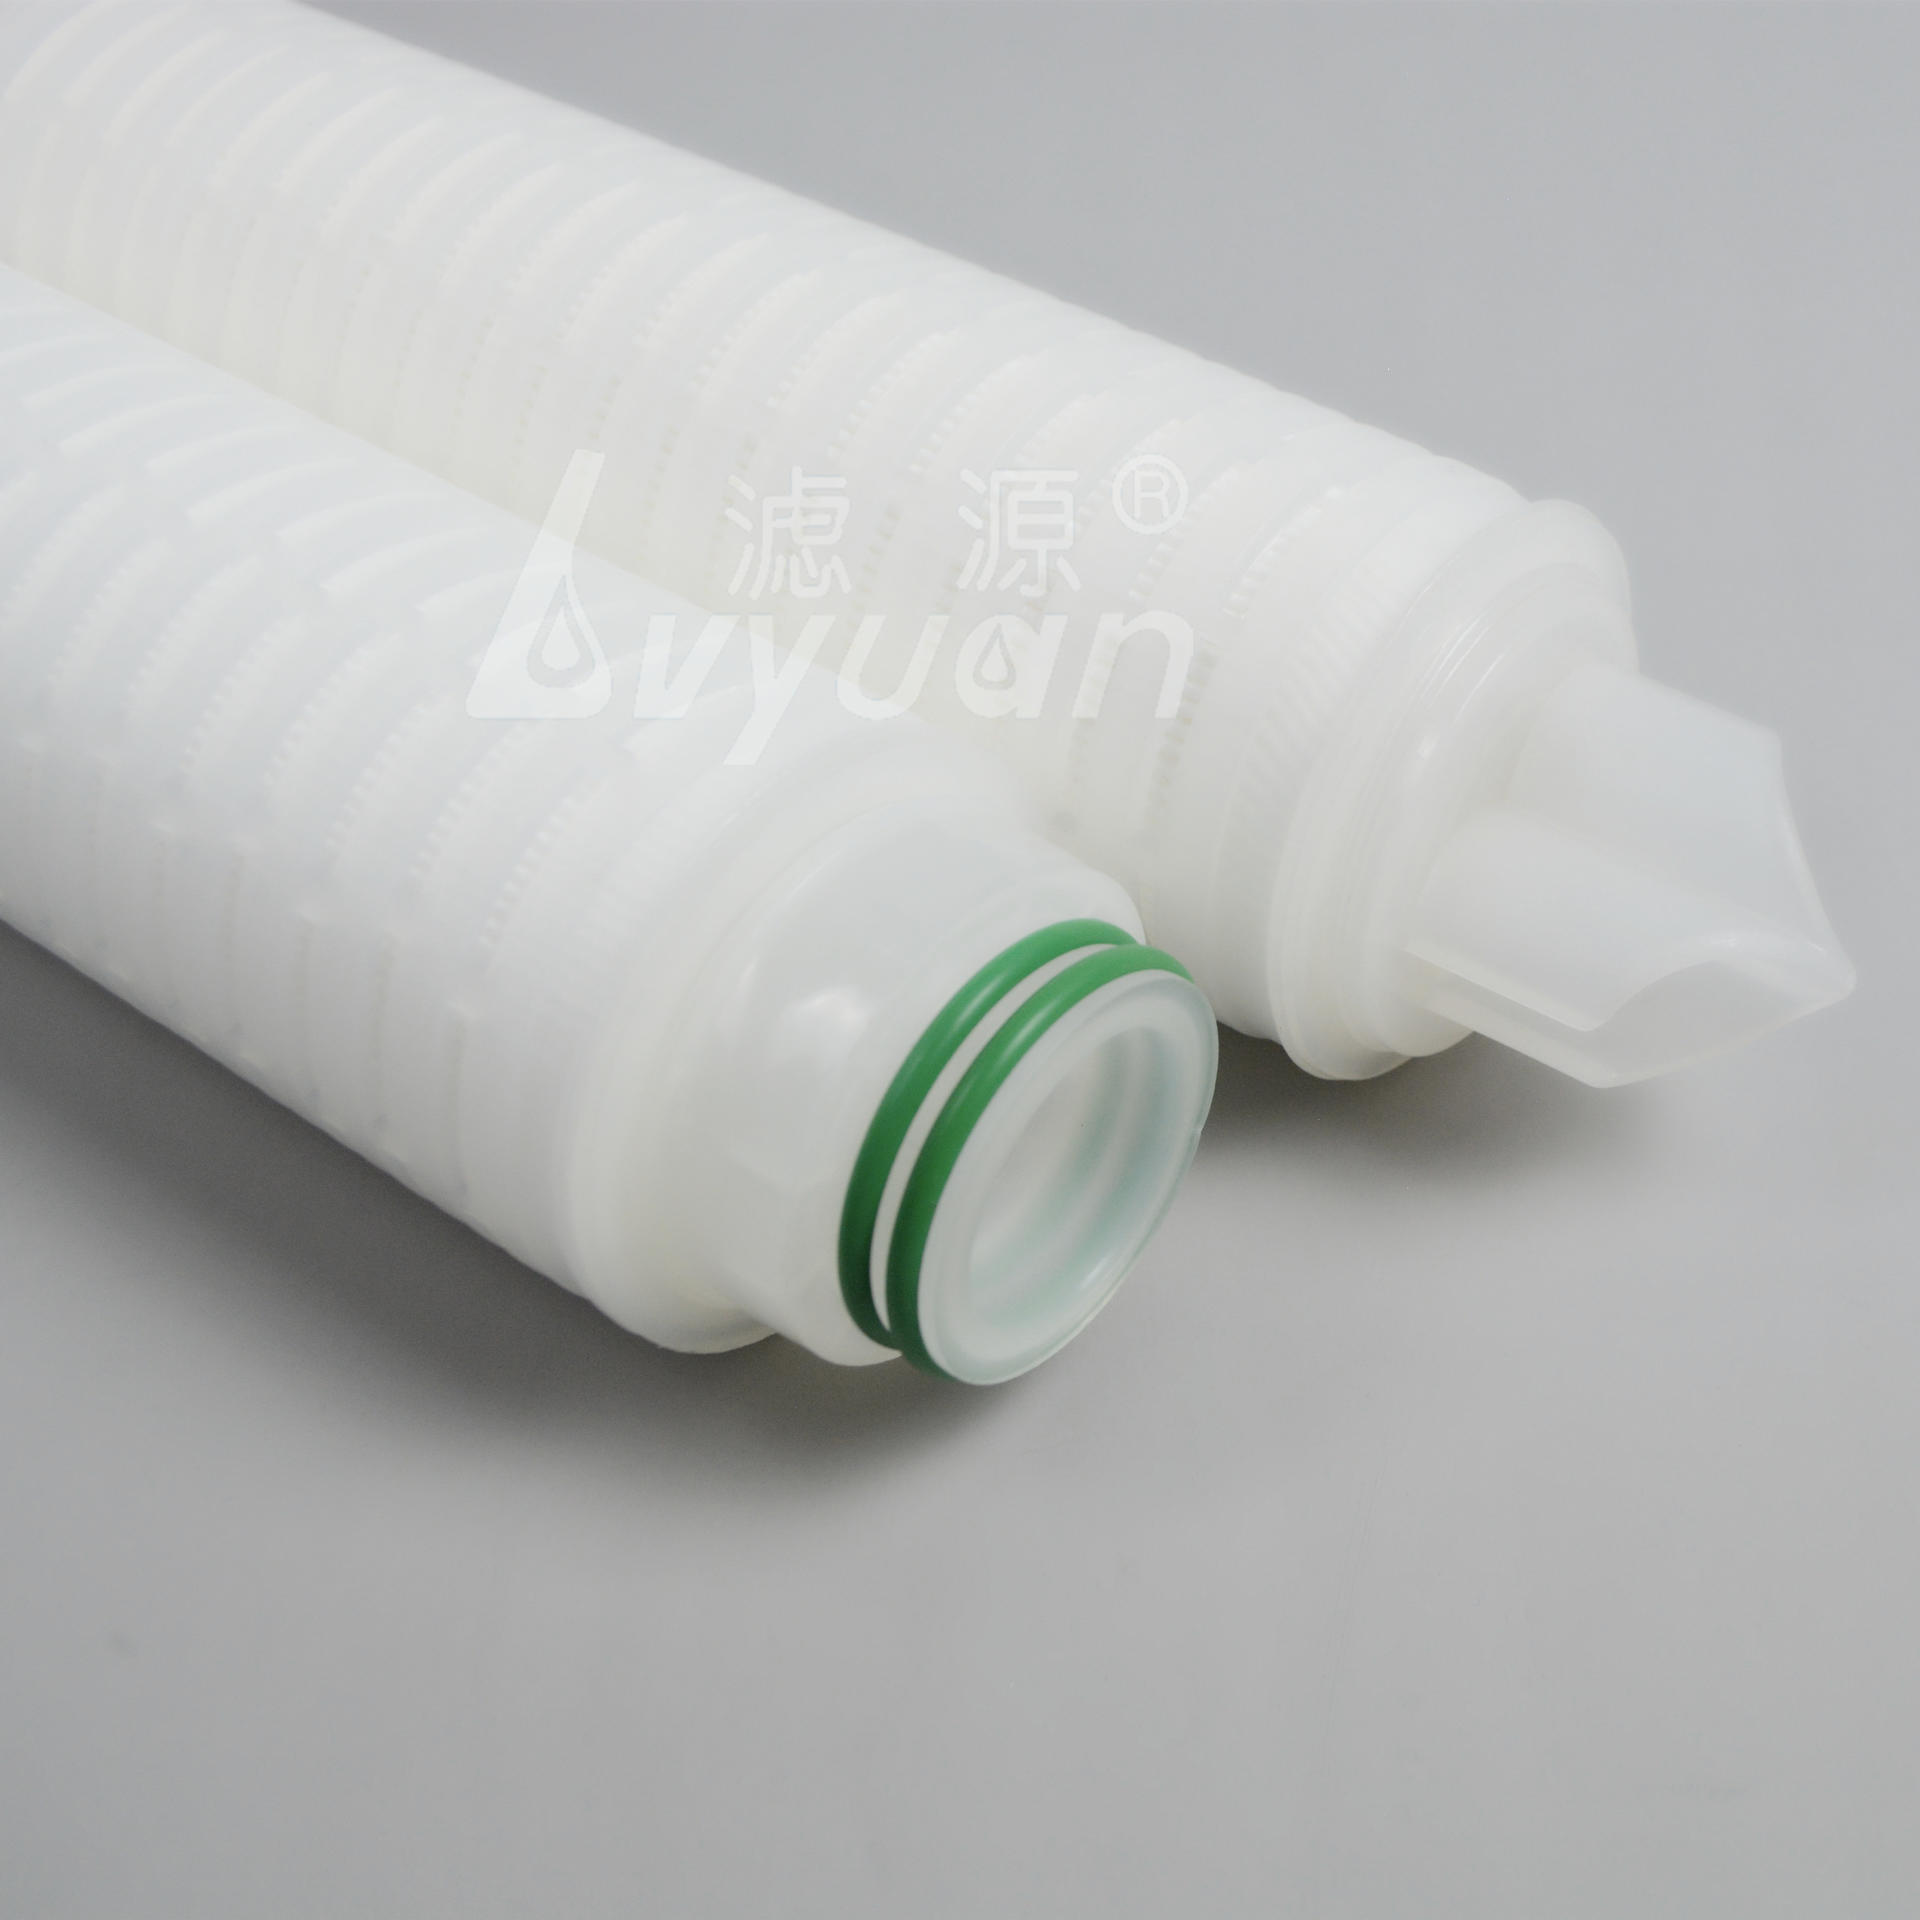 good price 10 20 30 40 inch polypropylene pleated membrane water filter cartridge for water filtration